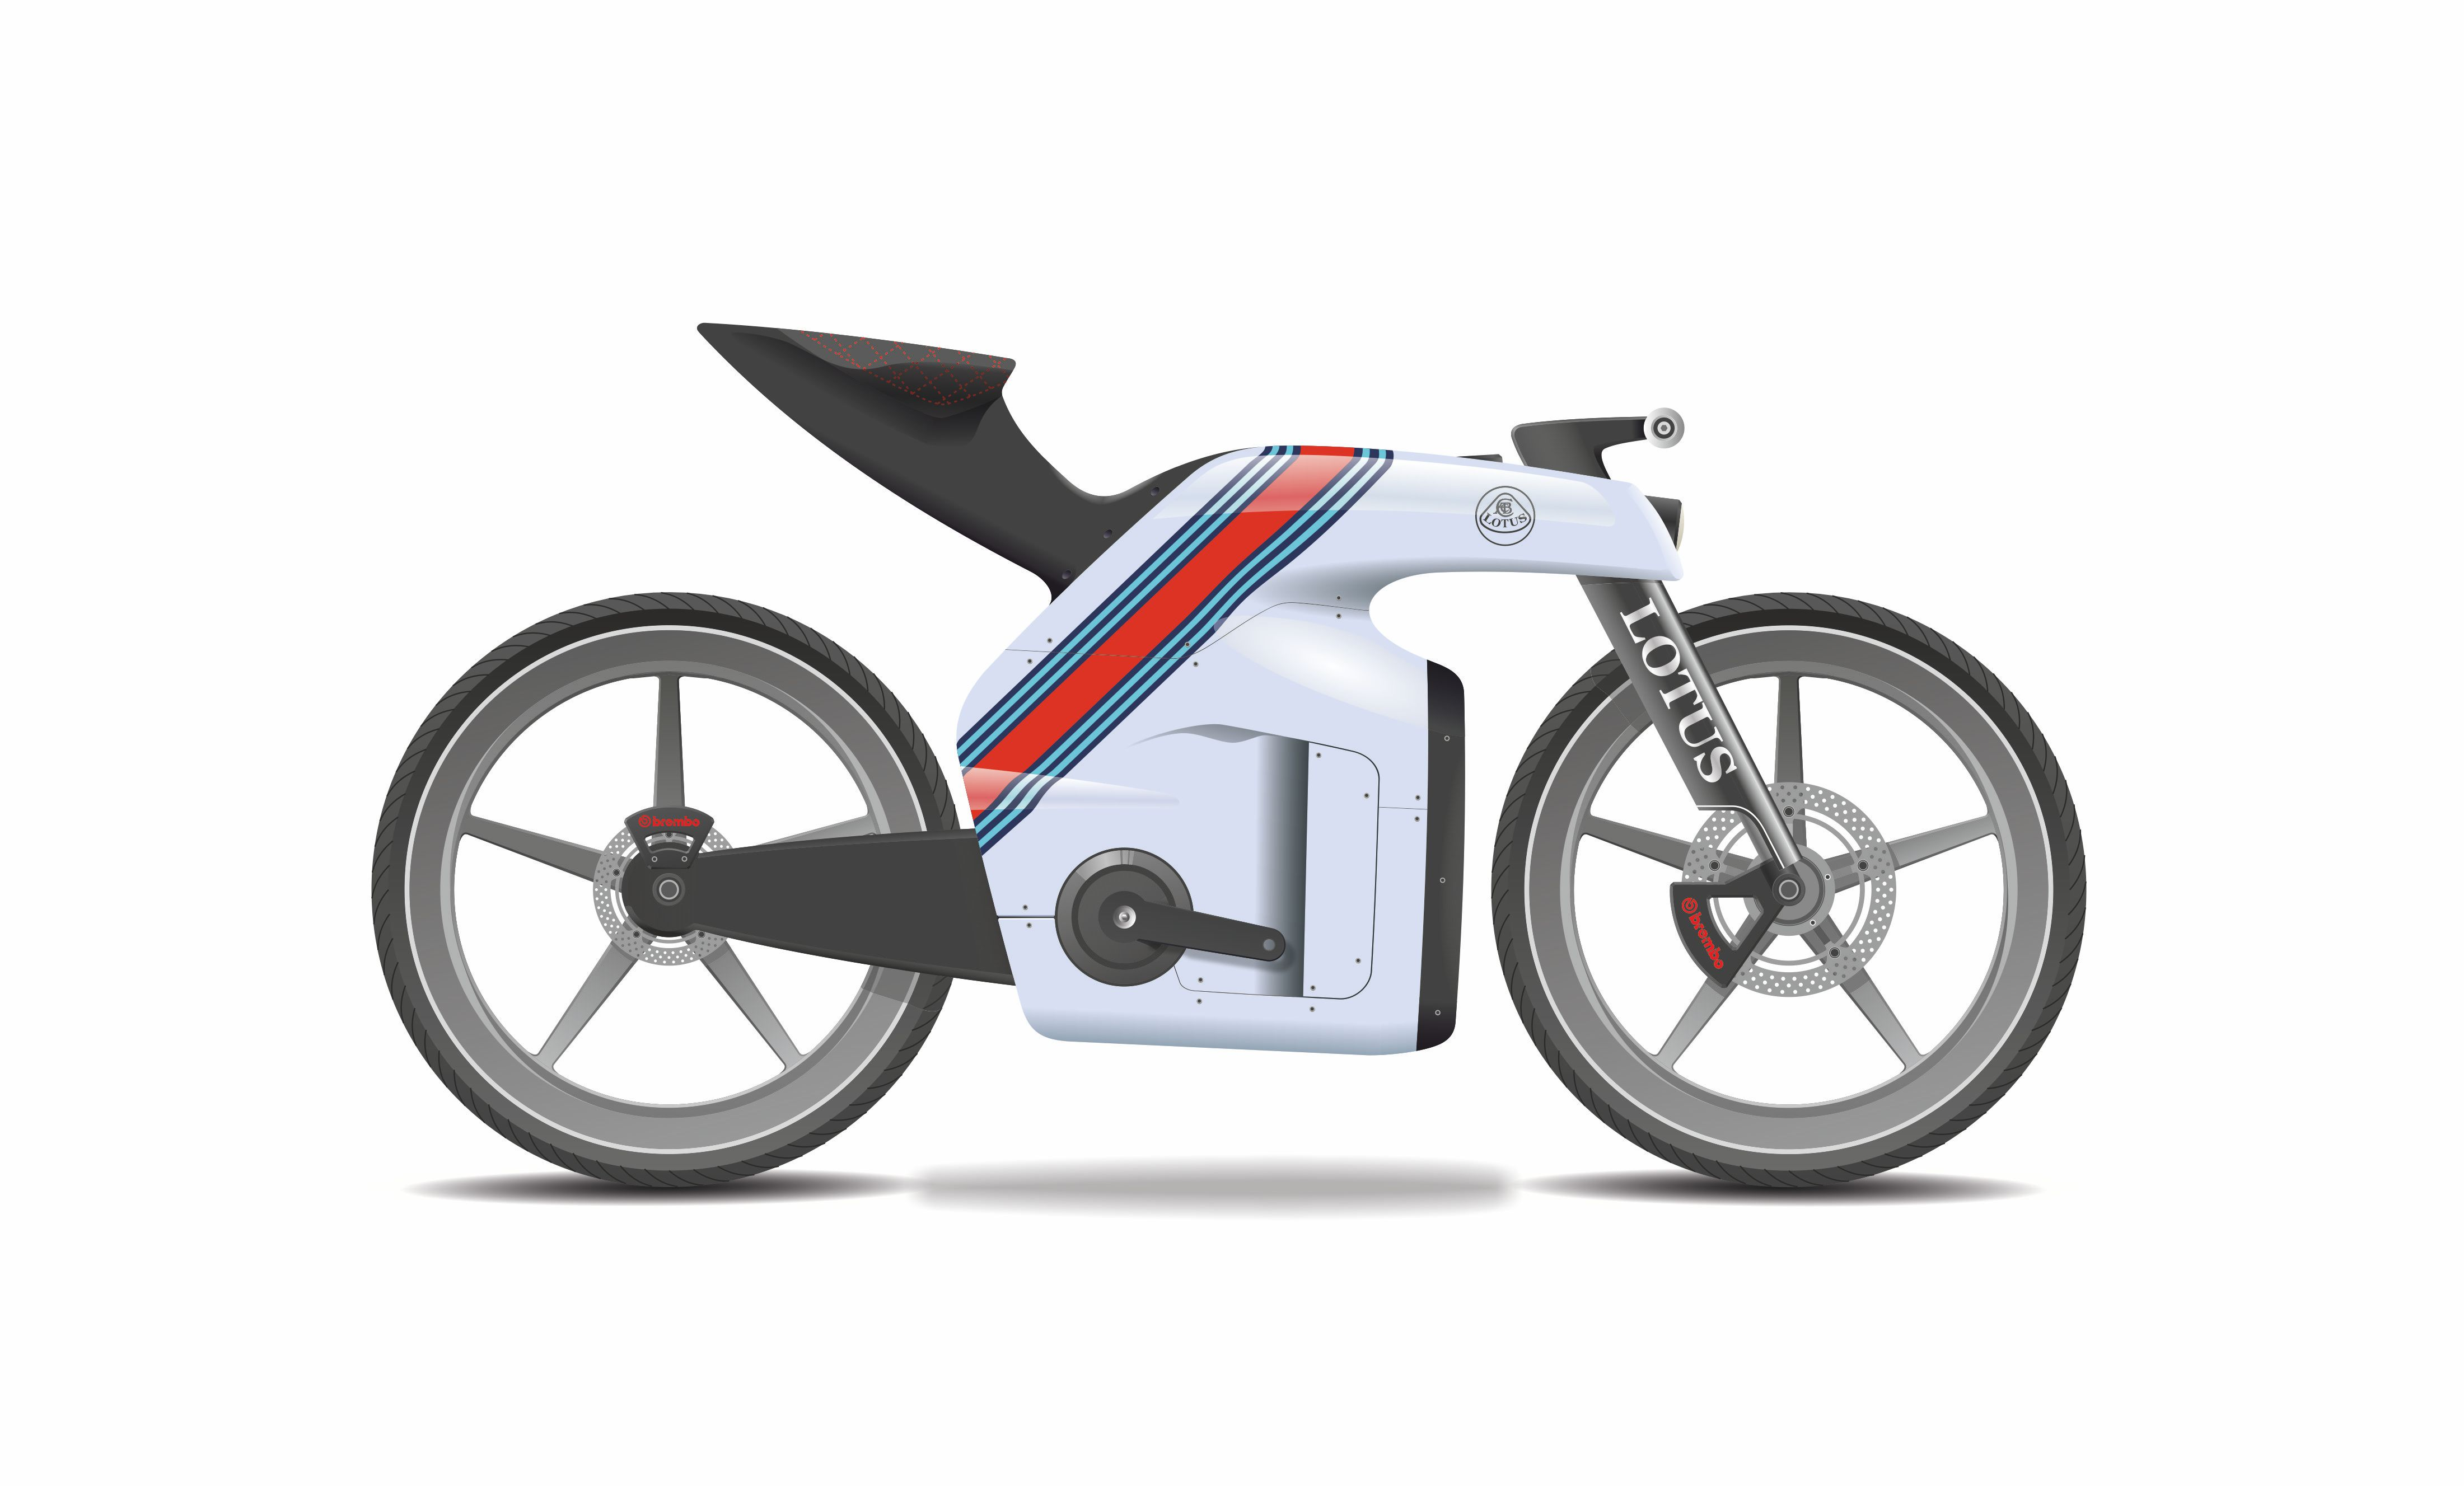 Lotus B 01 Electric Bicycle Concept For Lotus Motorcycle